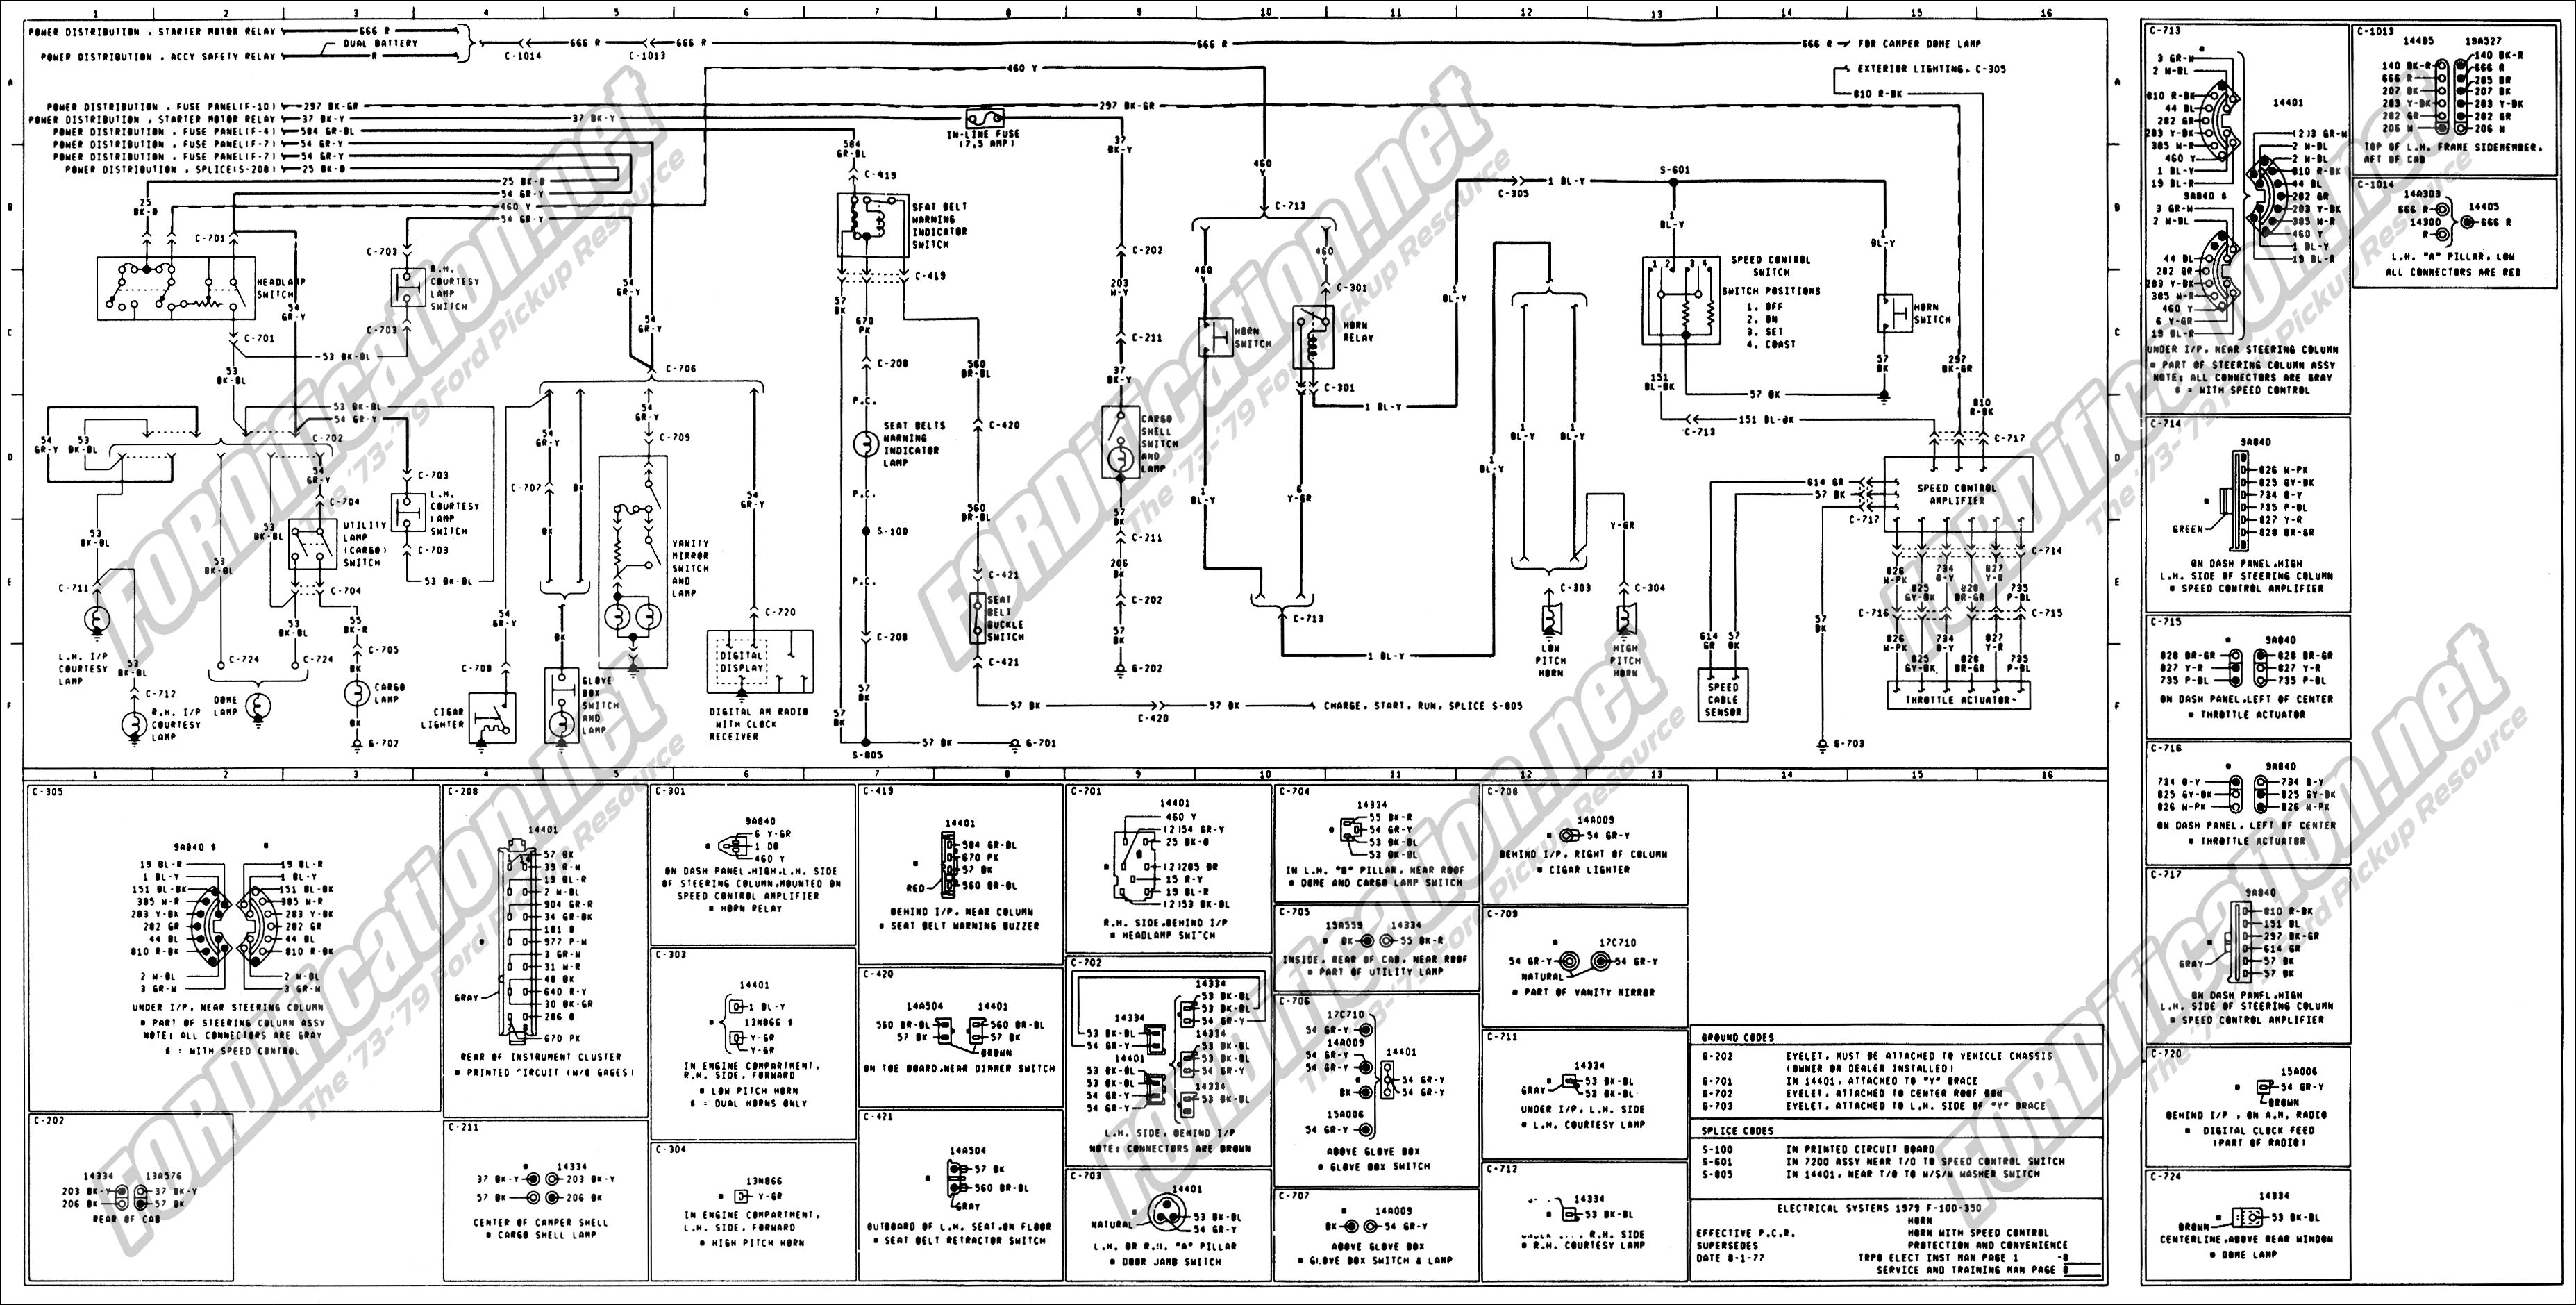 wiring_79master_8of9 1973 1979 ford truck wiring diagrams & schematics fordification net 2010 f350 wiring diagram at fashall.co